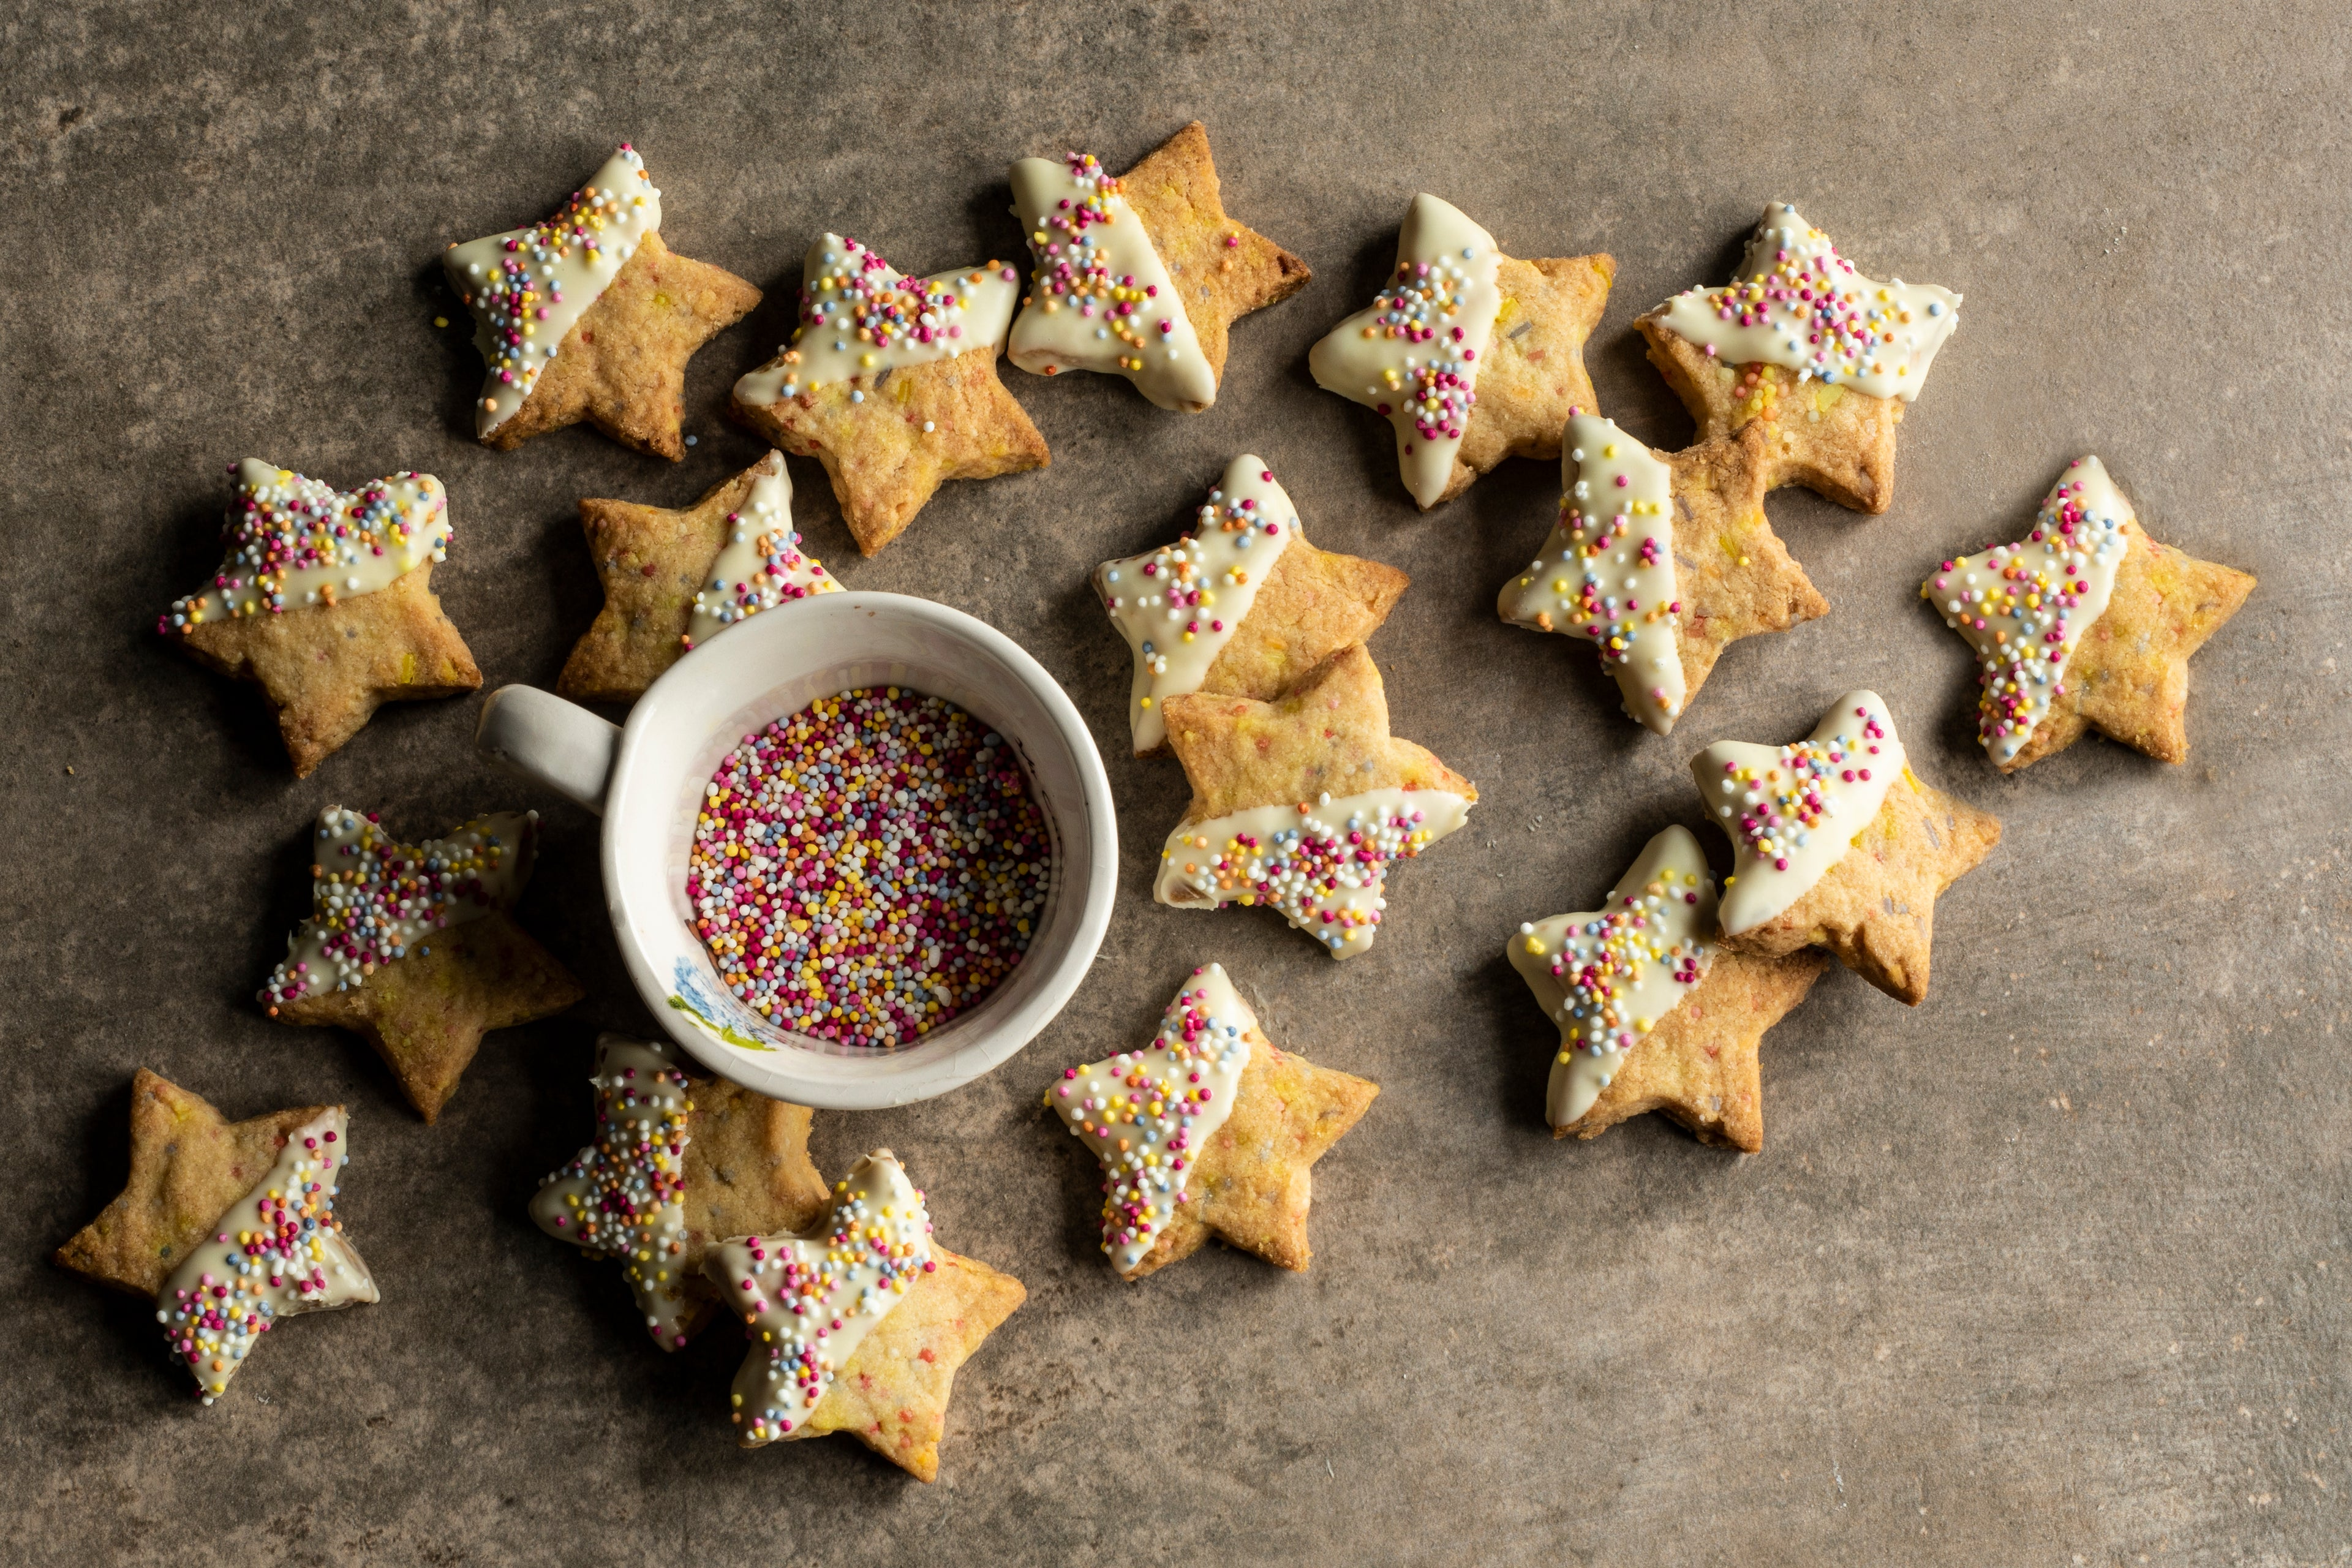 Star biscuits scattered around a small pot of sprinkles